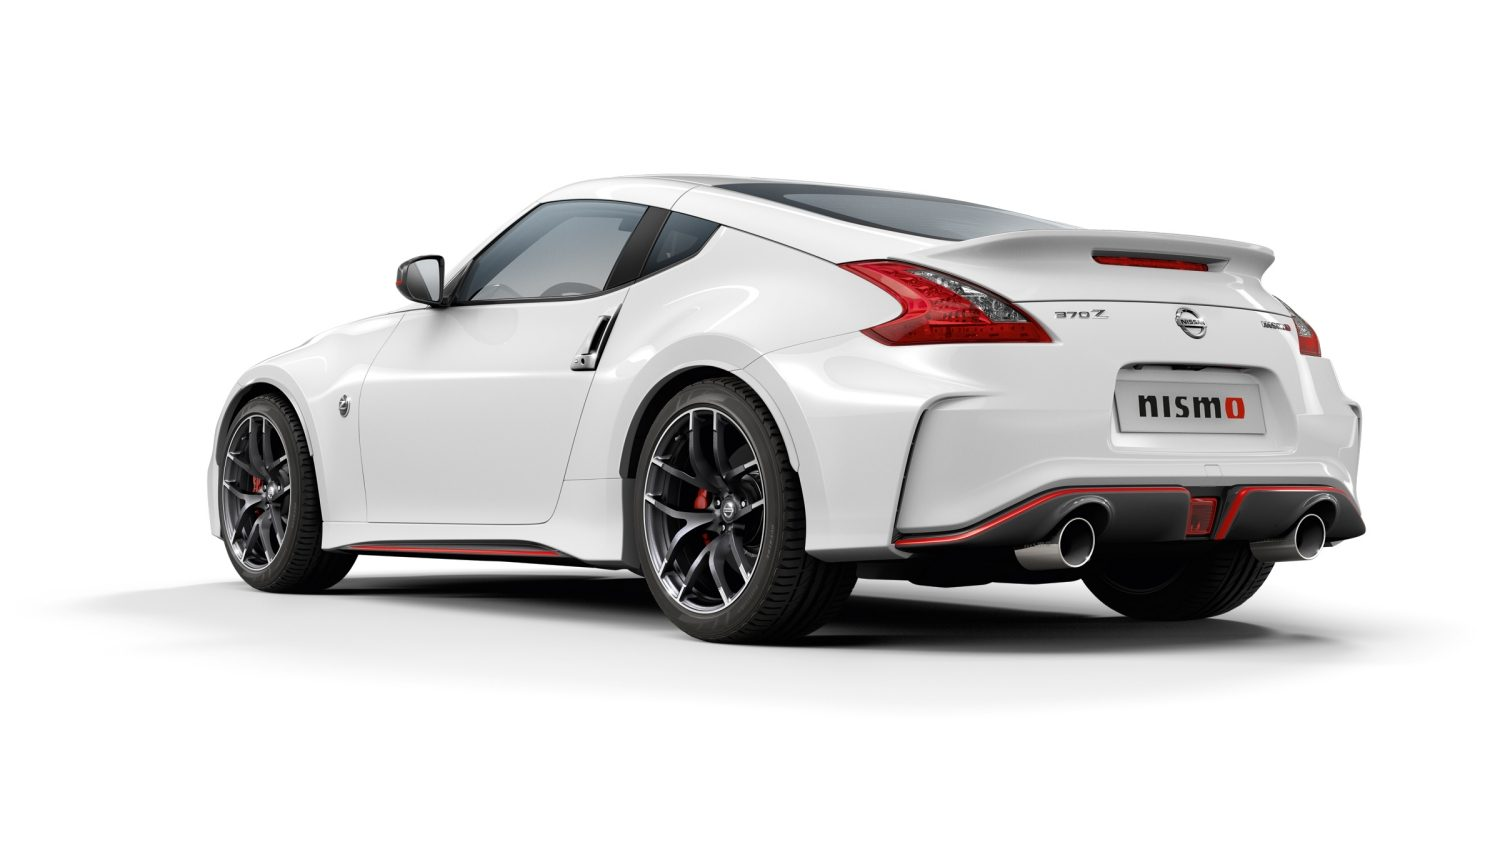 Nissan 370Z Coupé - Pearl White - Vista do extremo posterior